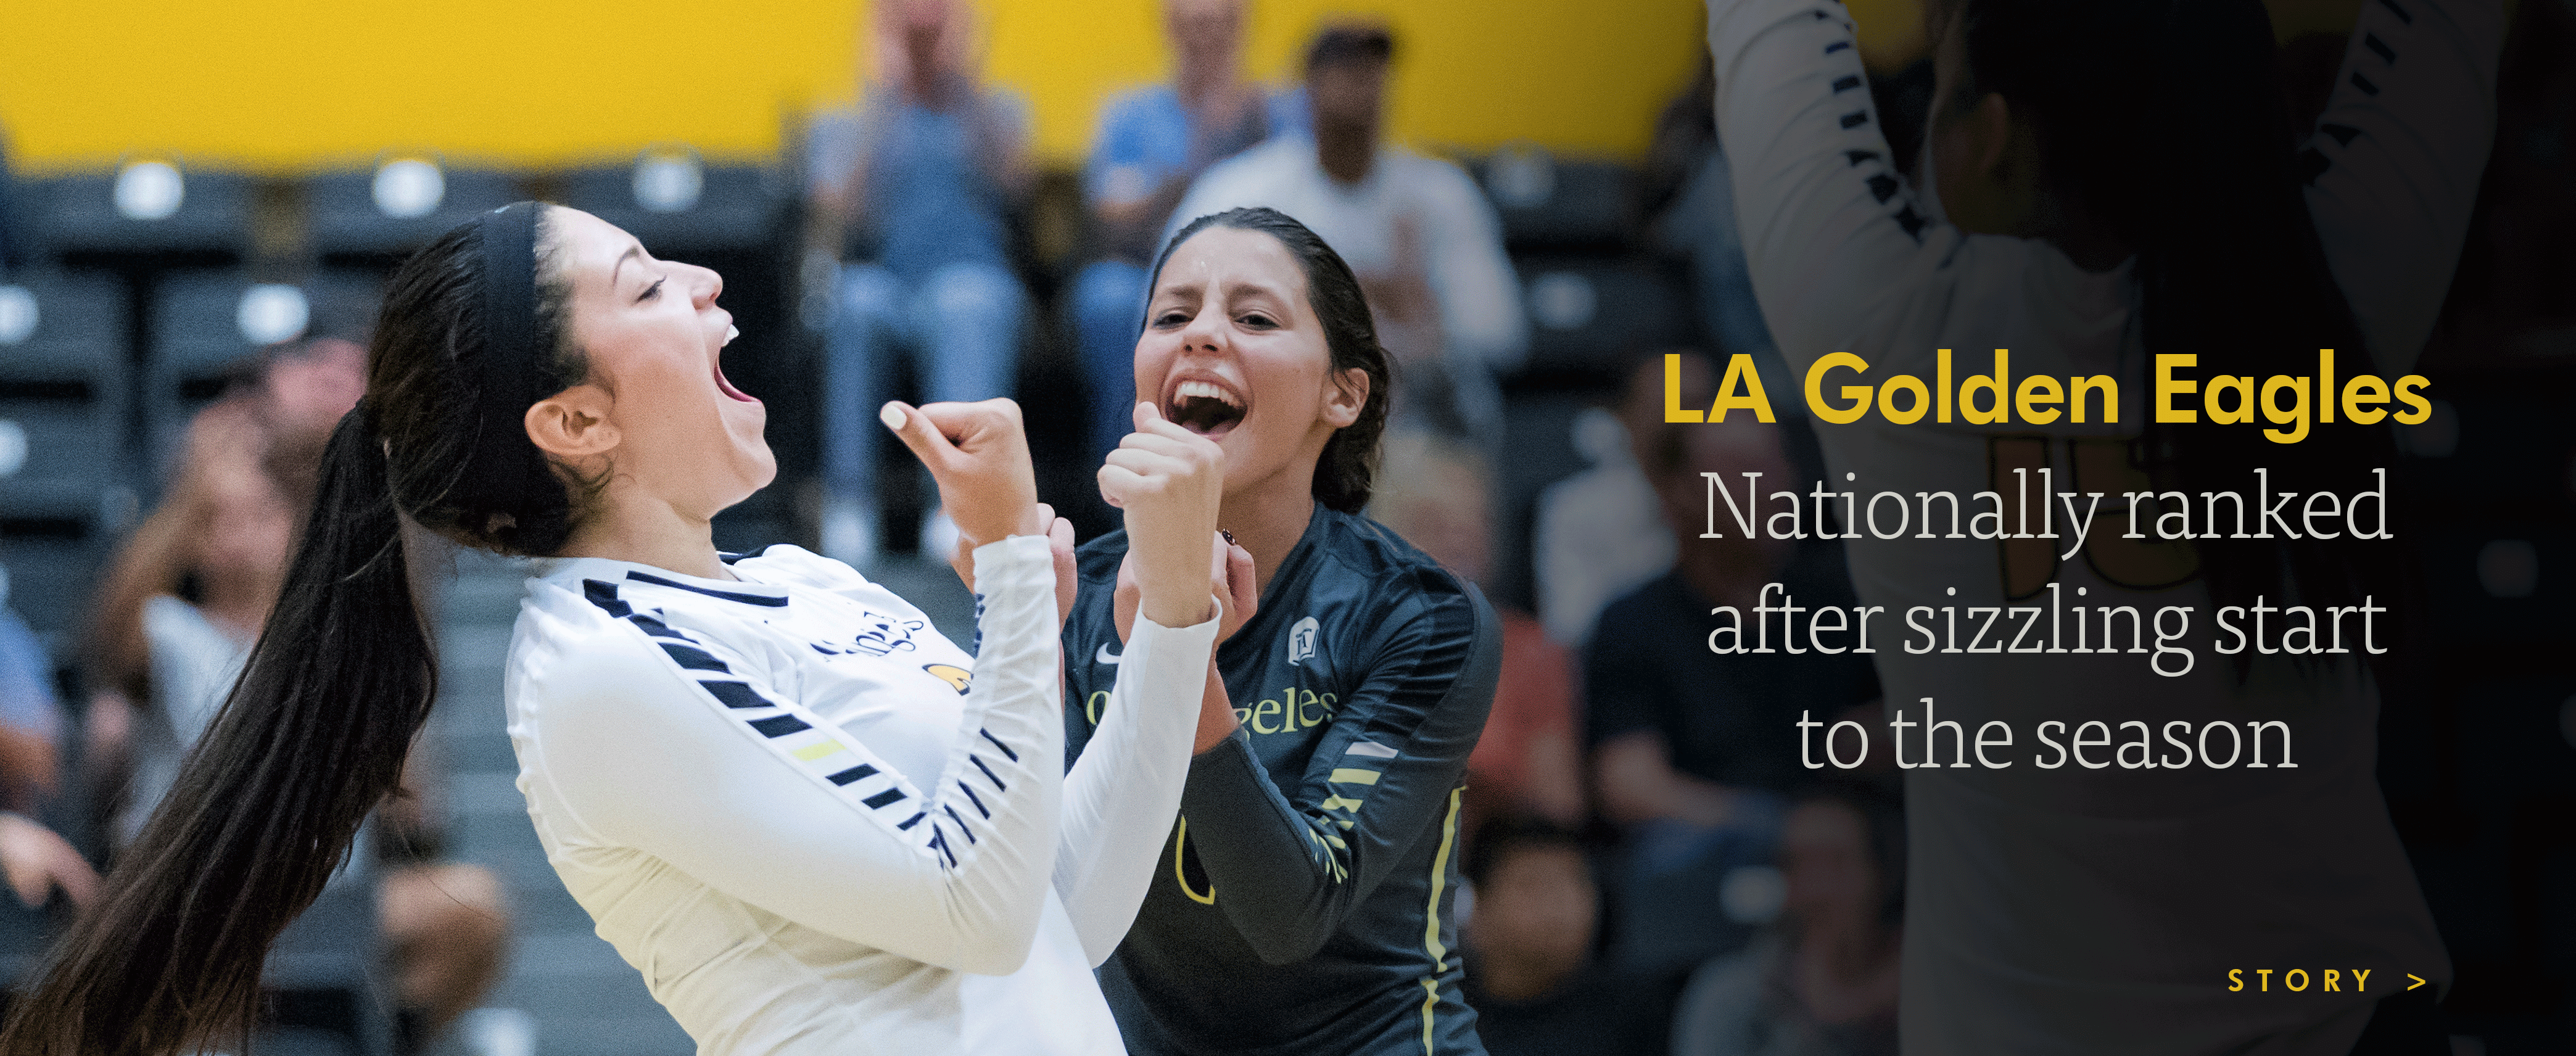 LA Golden Eagles nationally ranked after sizzling start to the season